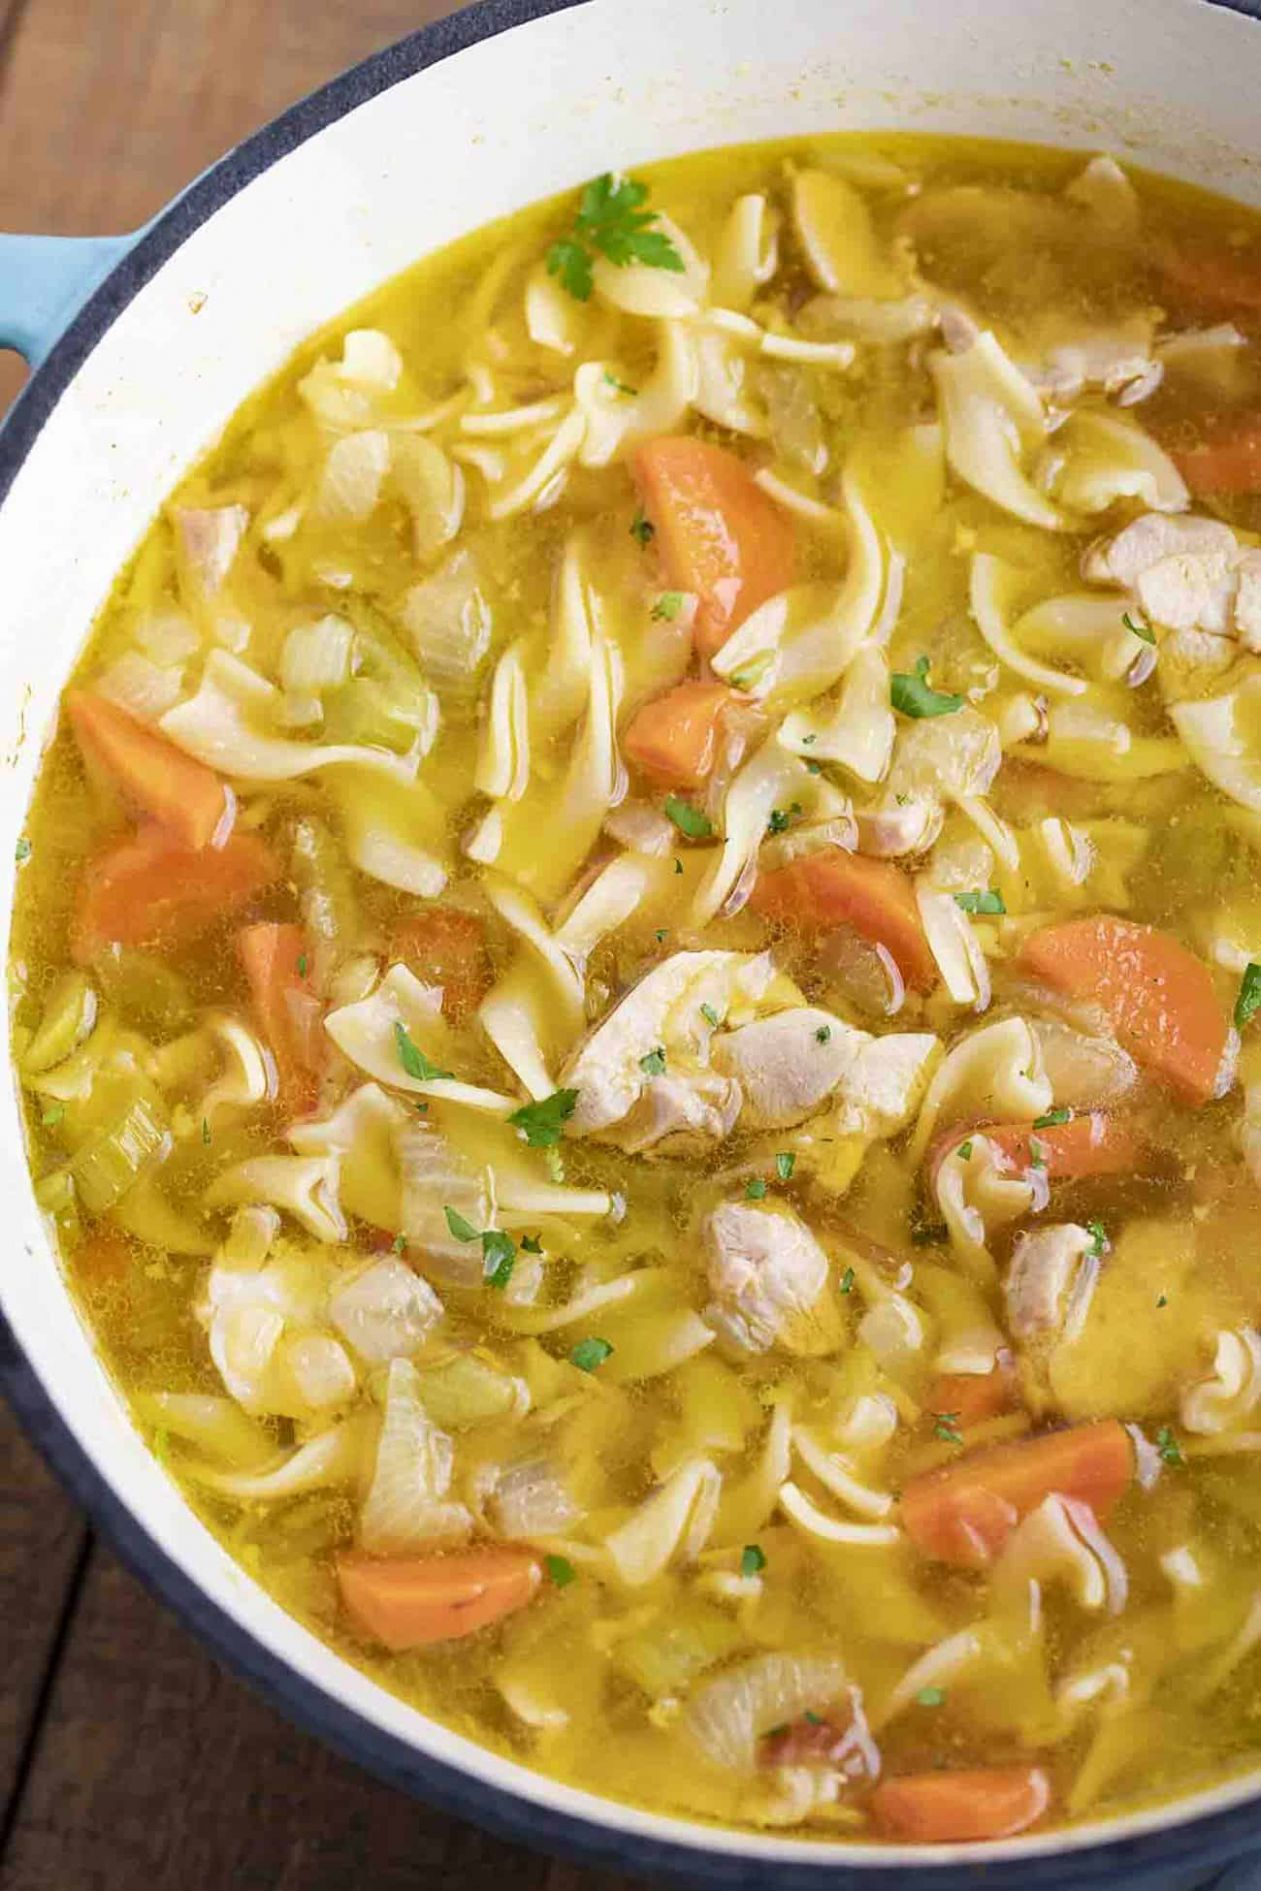 Classic Chicken Noodle Soup - Soup Recipes Using Chicken Stock